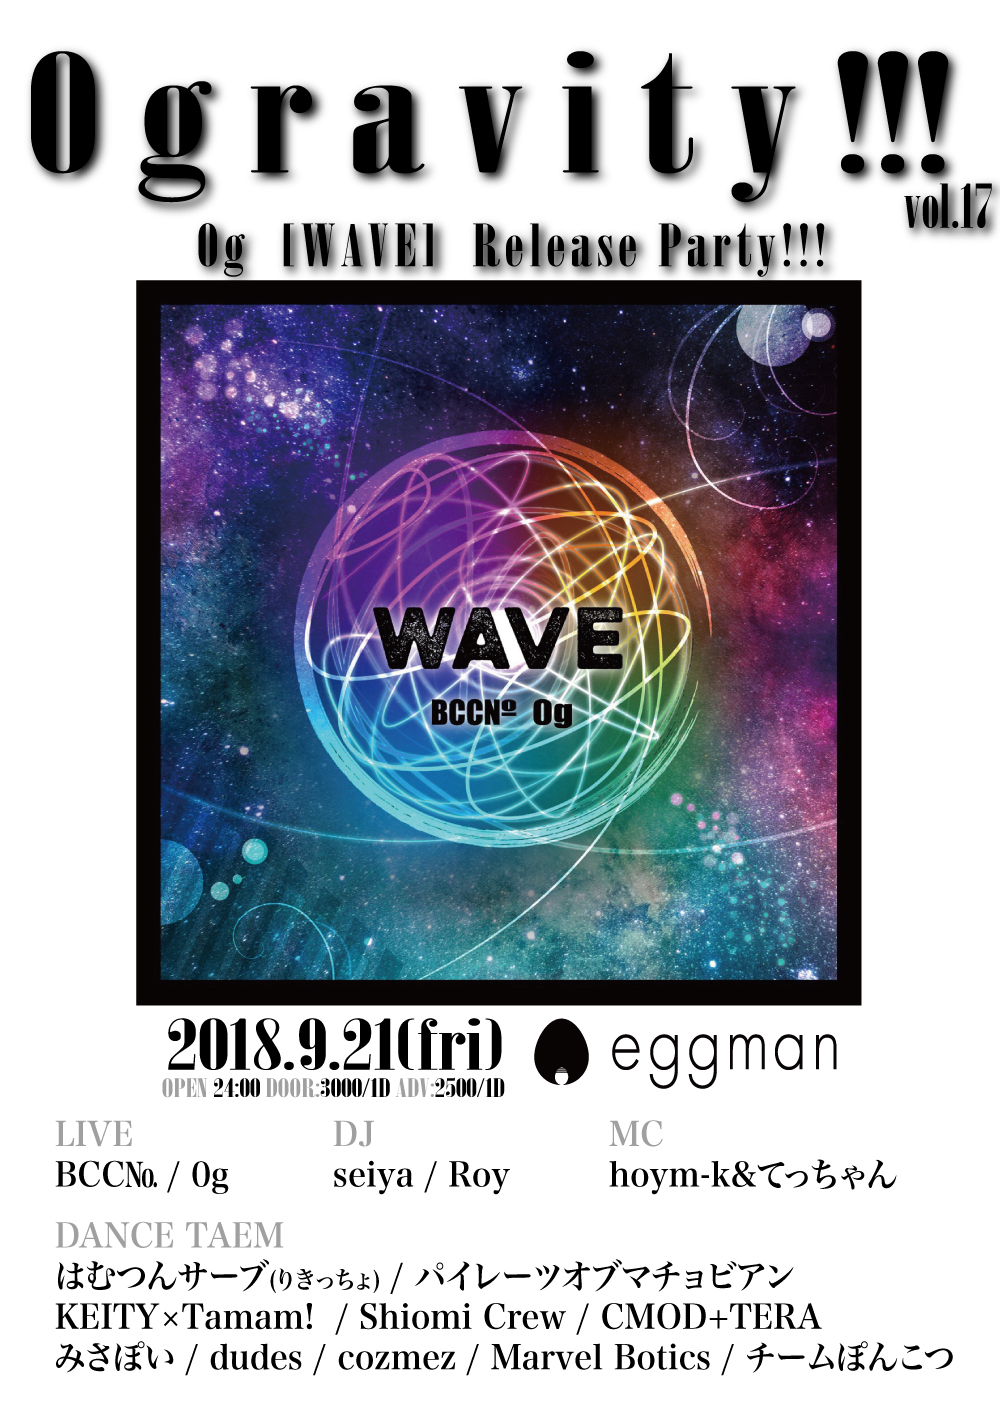 0gravity!!! vol.17 0g [WAVE] Release Party!!!